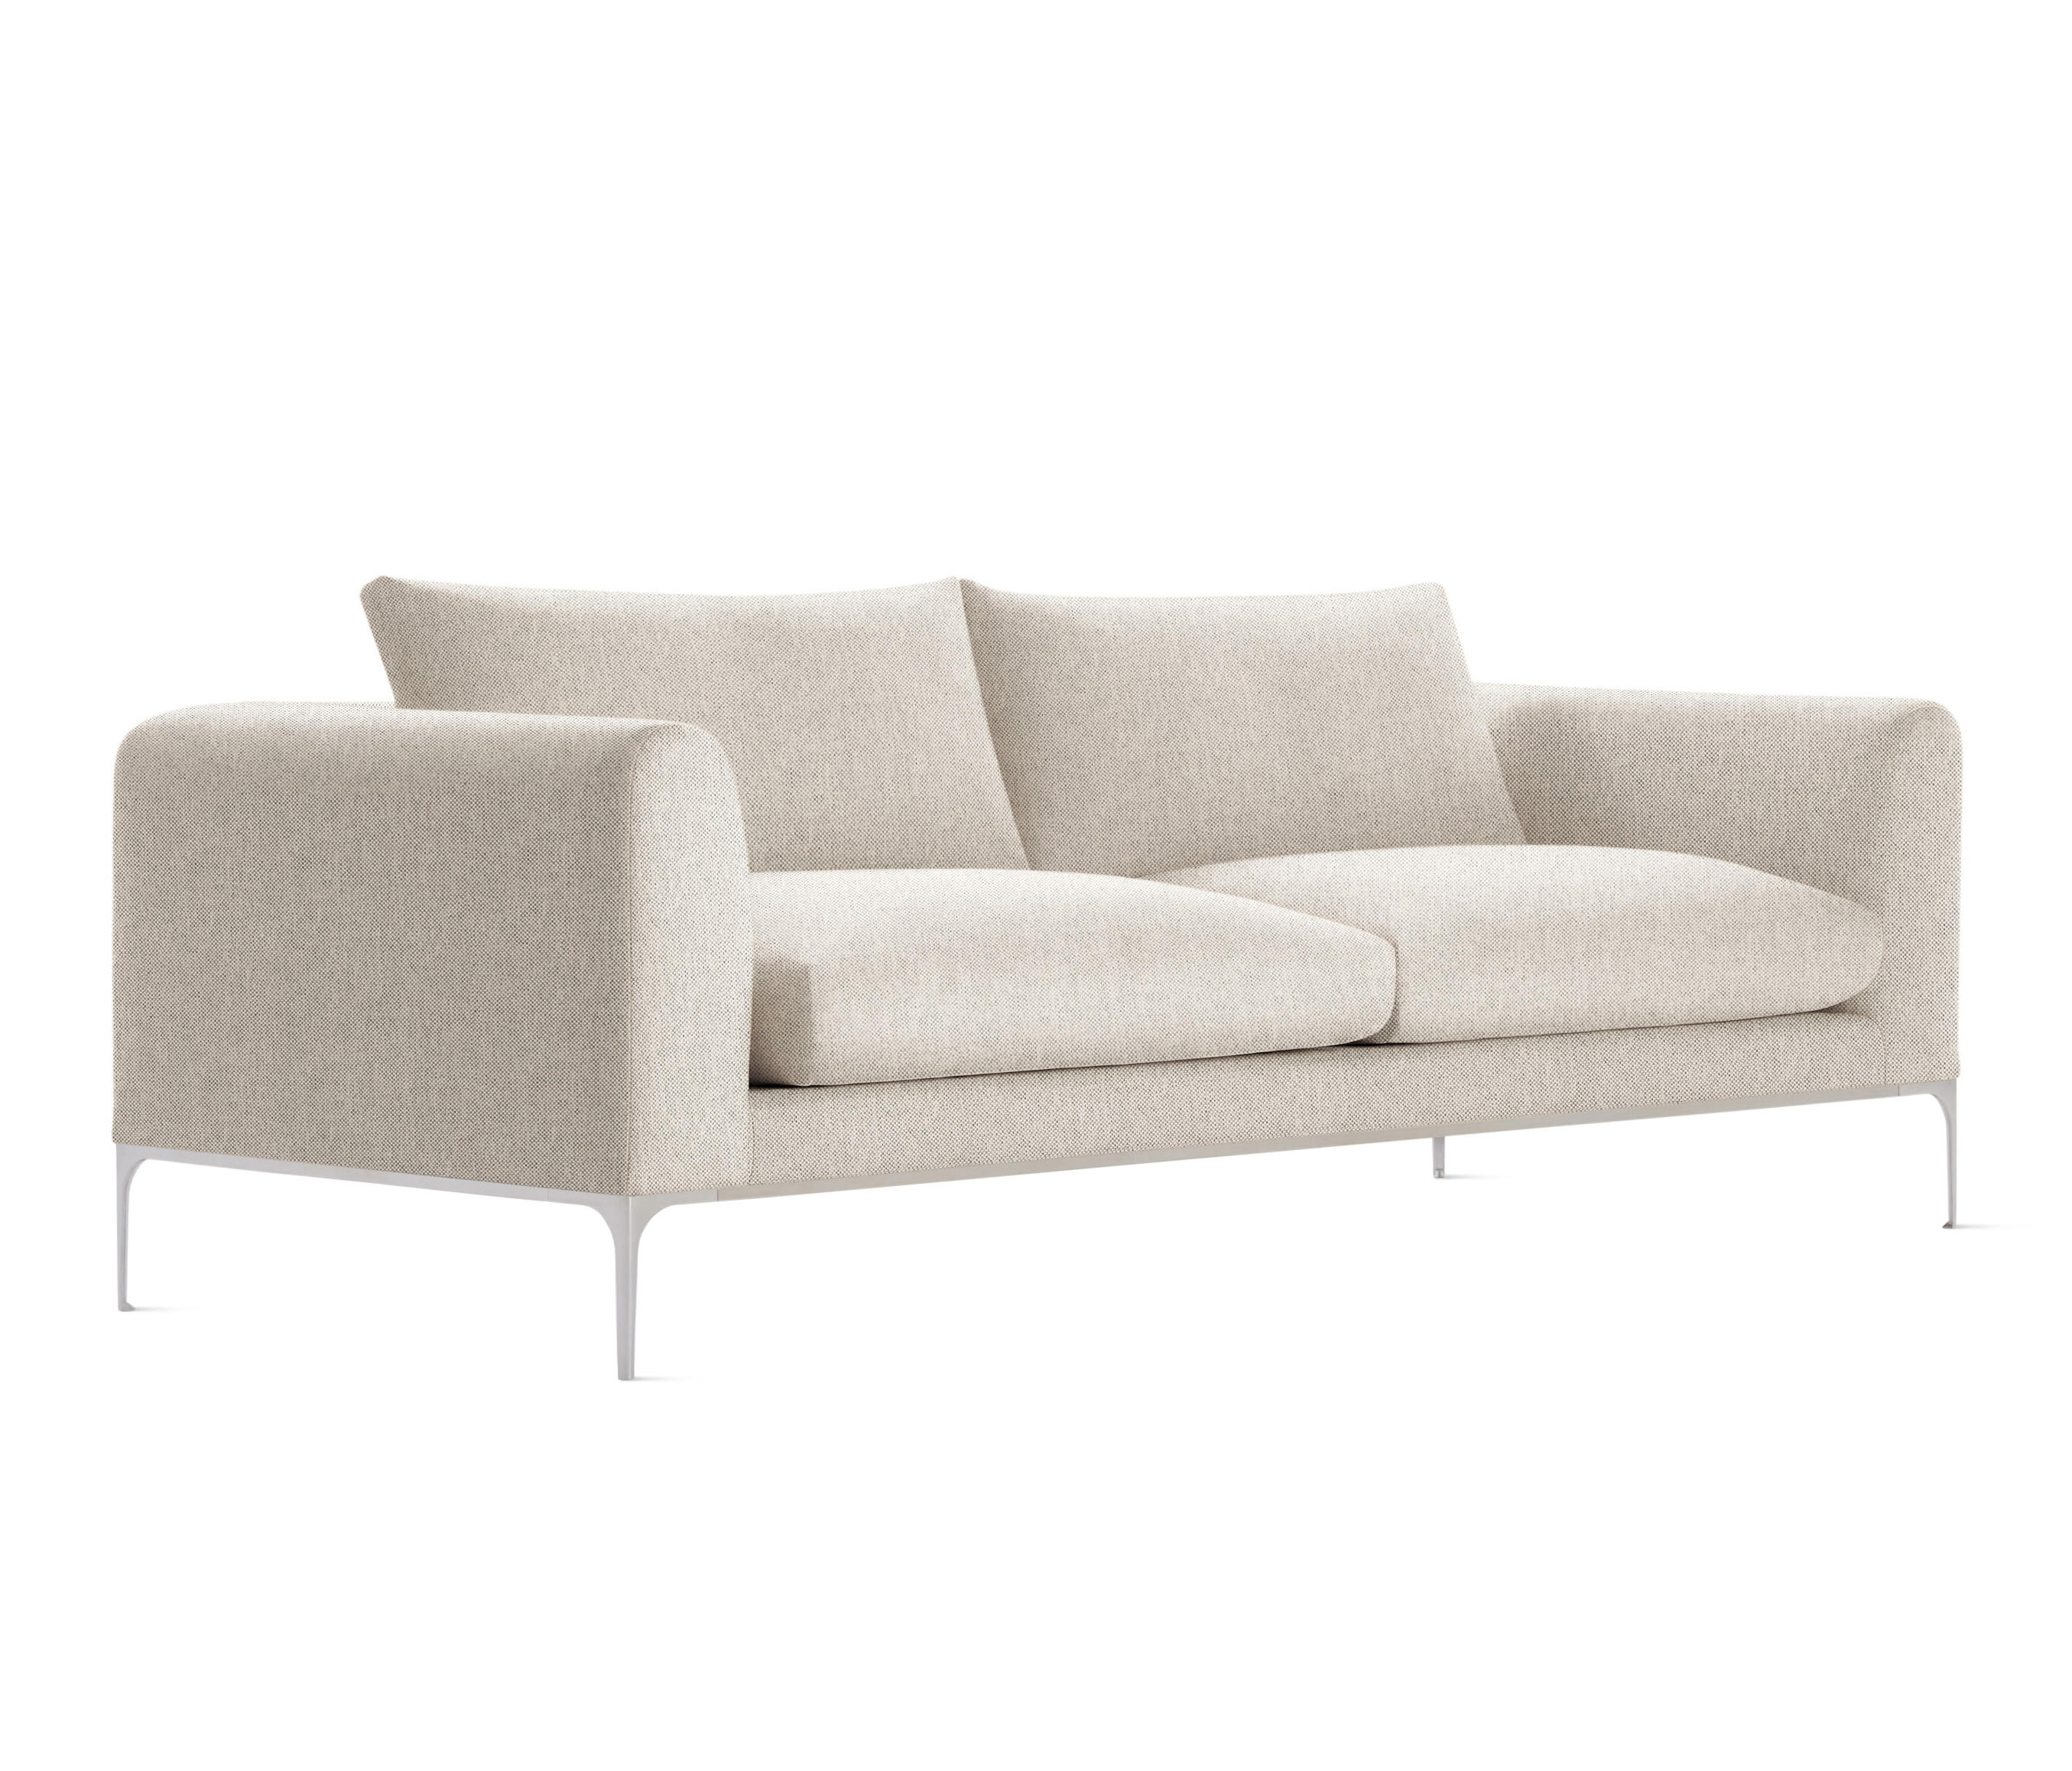 Sofa By Design Nepaphotoscom